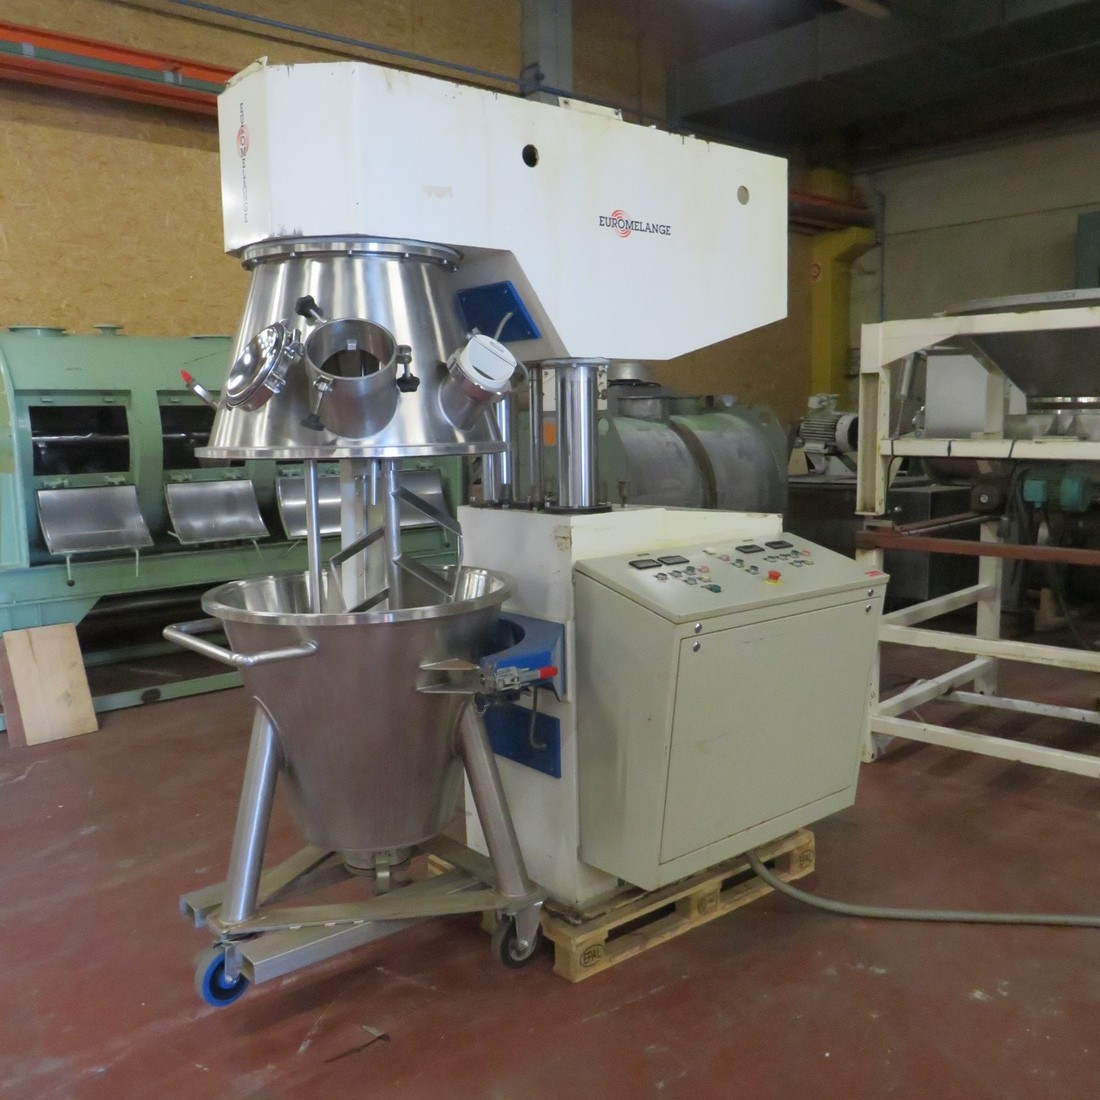 R6MP114  steel planetary mixer EUROMELANGE 200 l tank Ø 810/450 height 700 mm